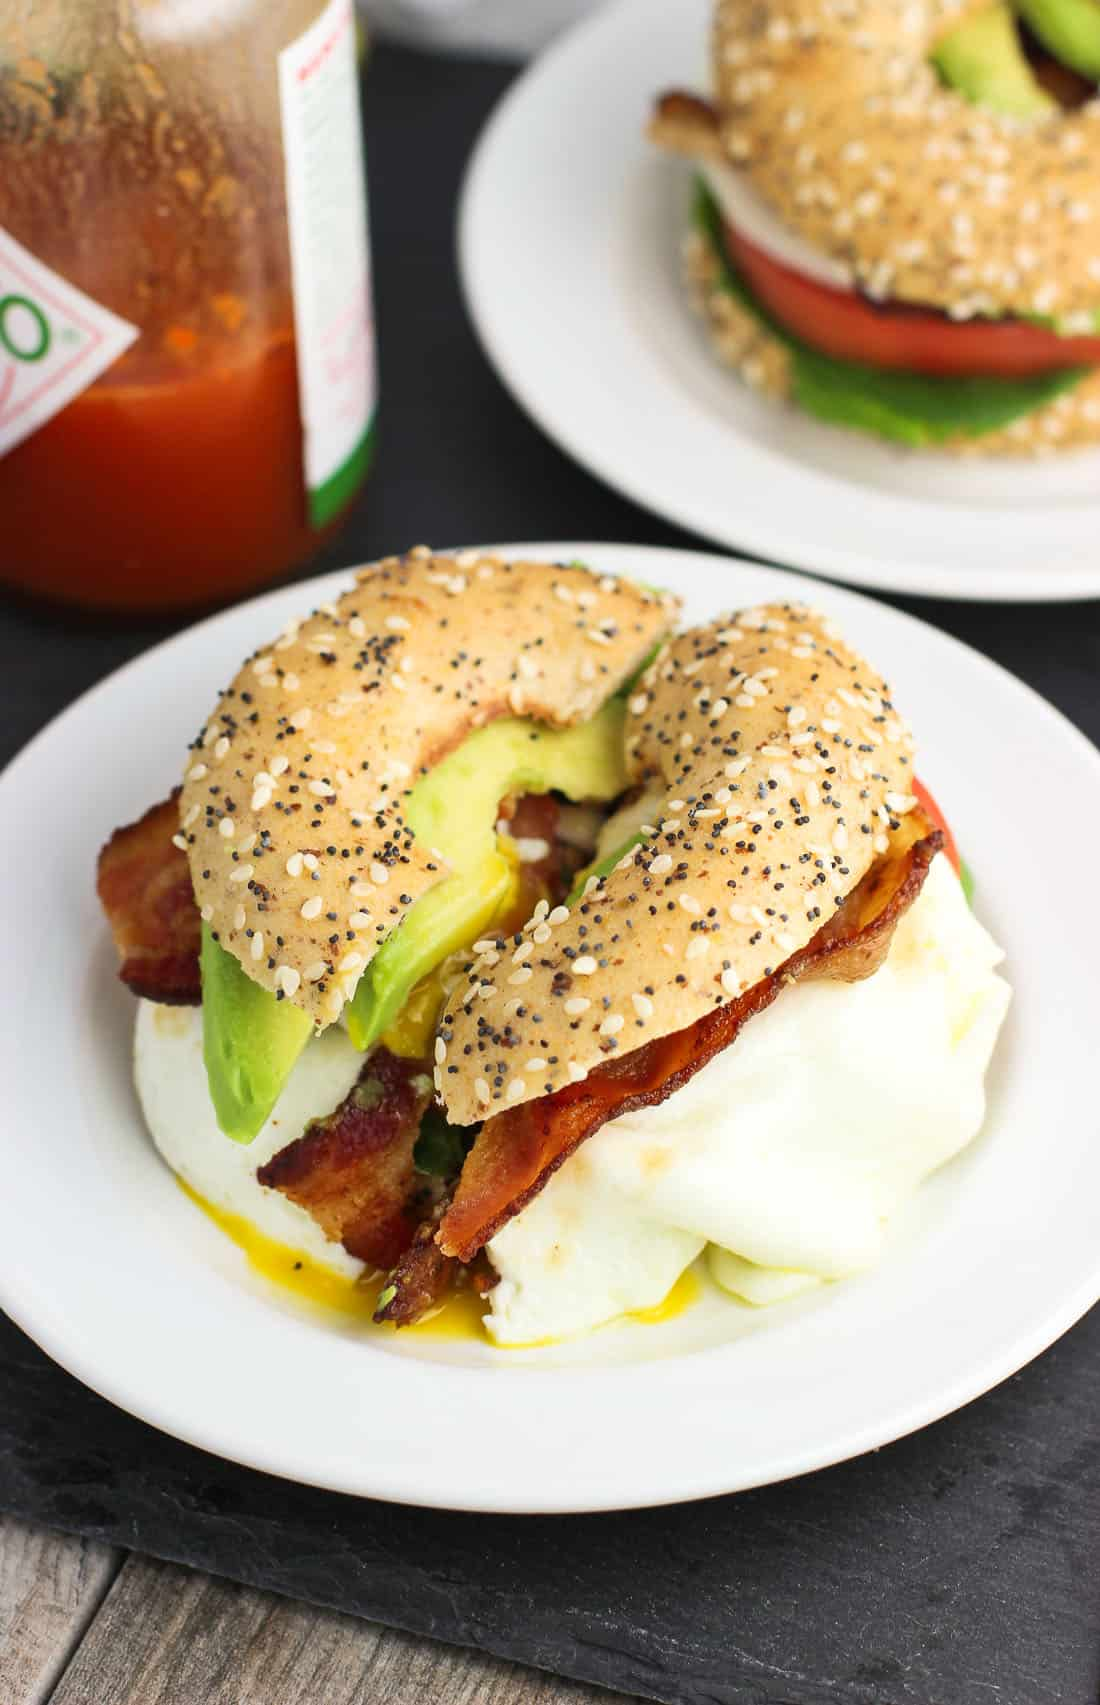 A BLT with avocado slices and egg on an everything bagel thin on a small plate next to a bottle of hot sauce